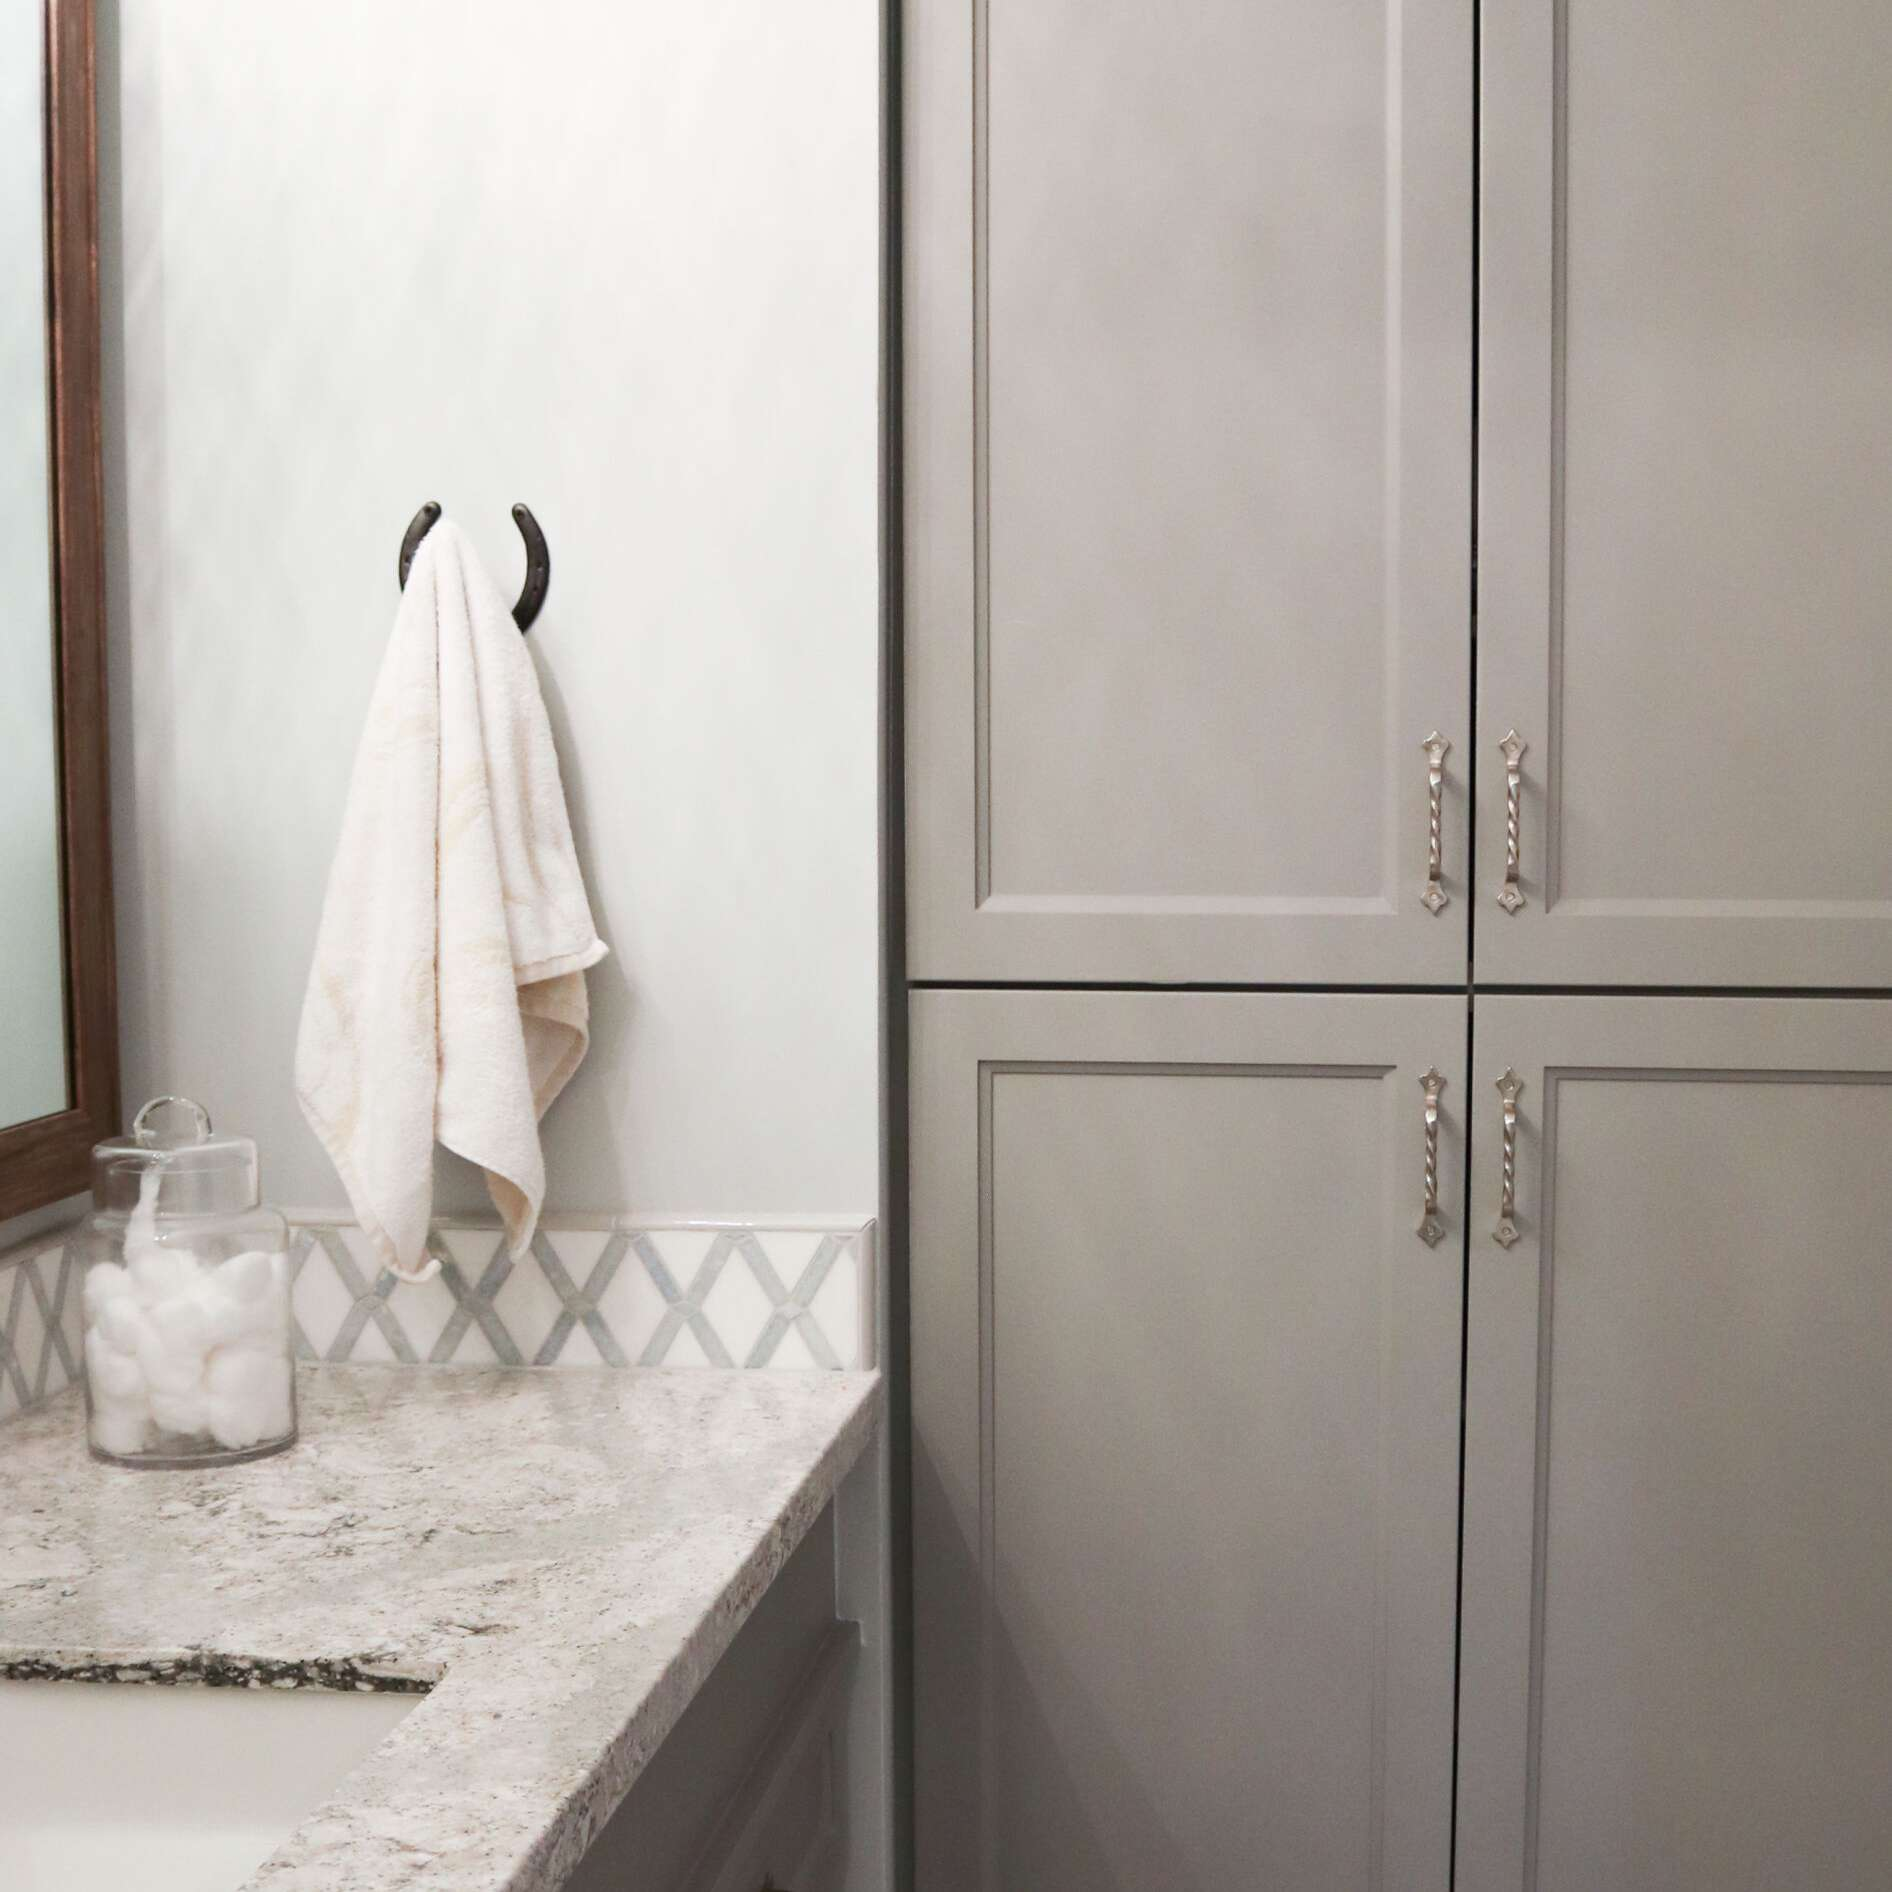 Marble sink with gray cabinets